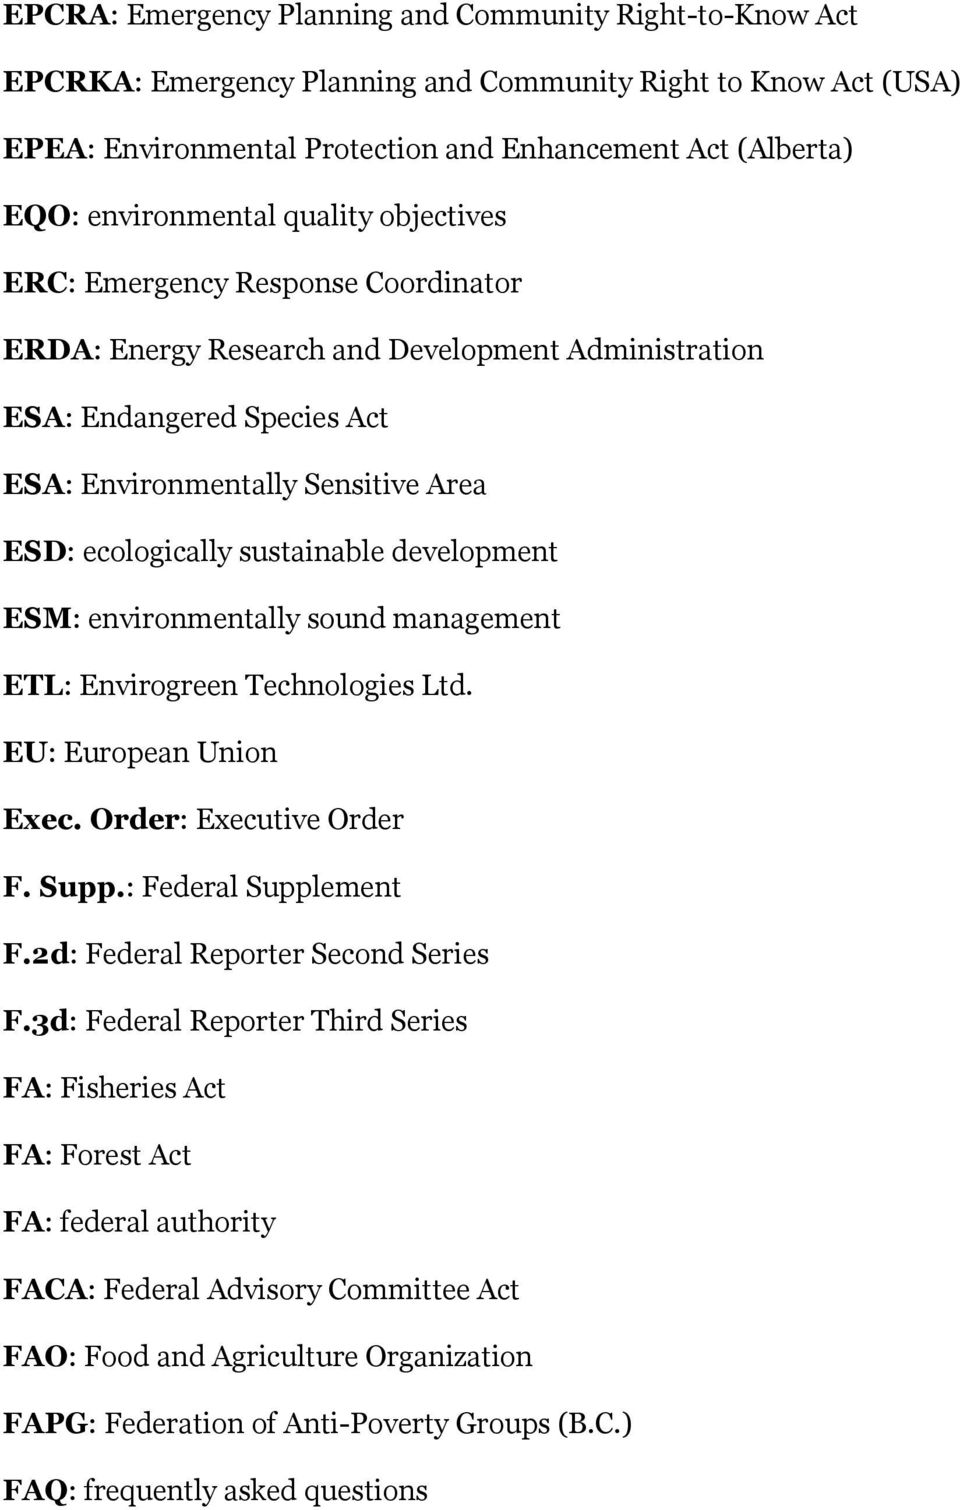 ecologically sustainable development ESM: environmentally sound management ETL: Envirogreen Technologies Ltd. EU: European Union Exec. Order: Executive Order F. Supp.: Federal Supplement F.